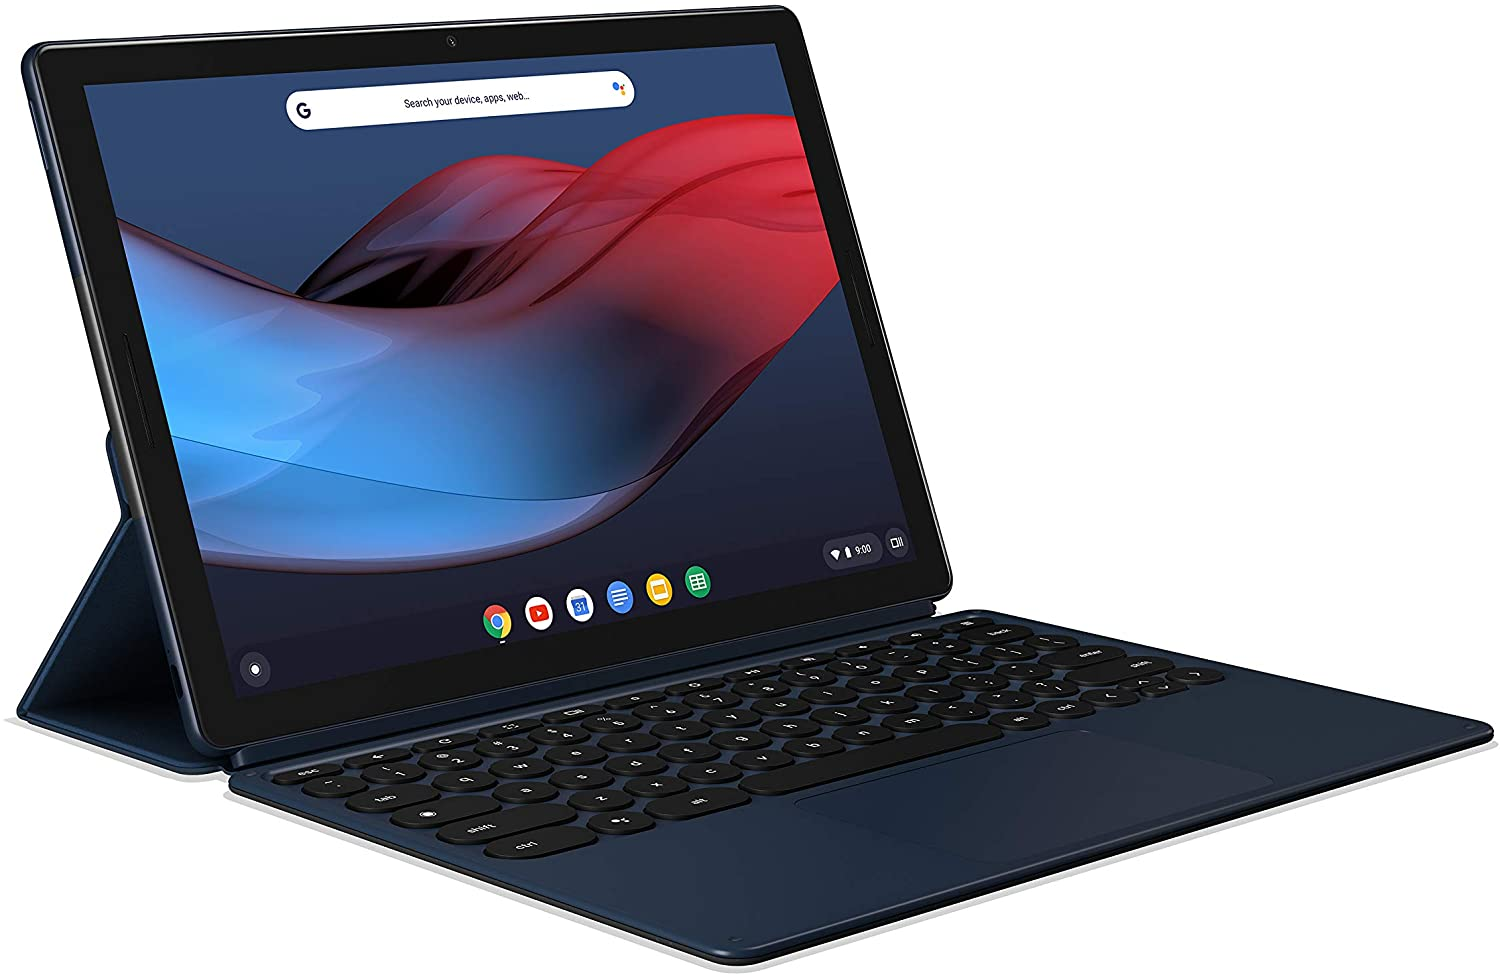 10 Best Laptop For MBA Students In 2021 [Detailed Guide]